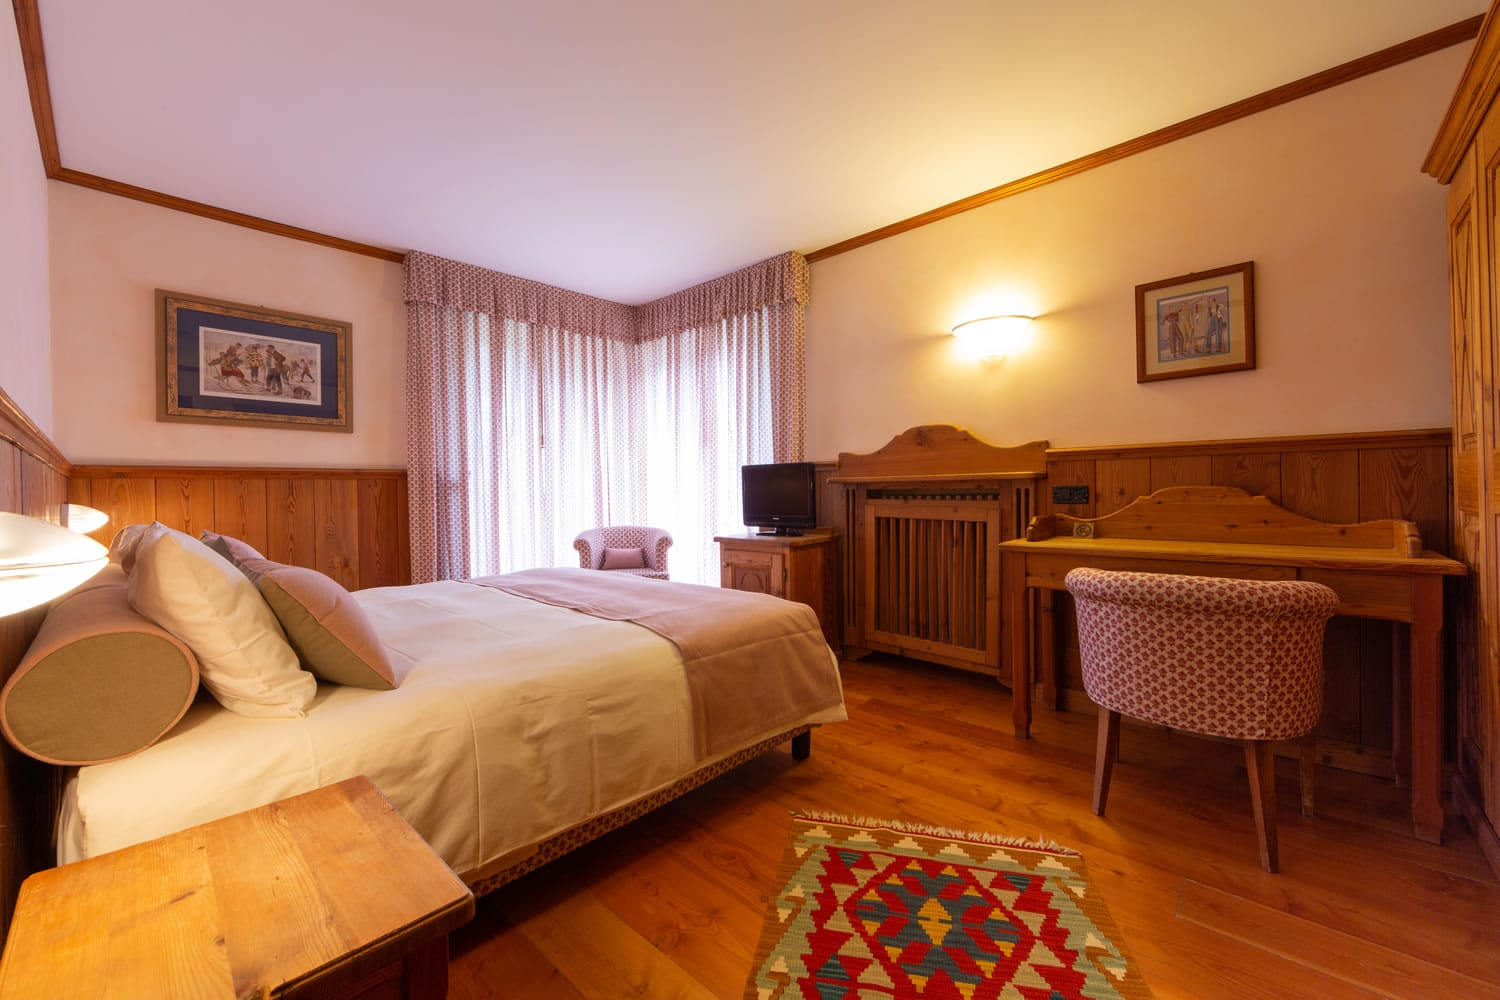 Hotel Bouton d'Or - Le camere